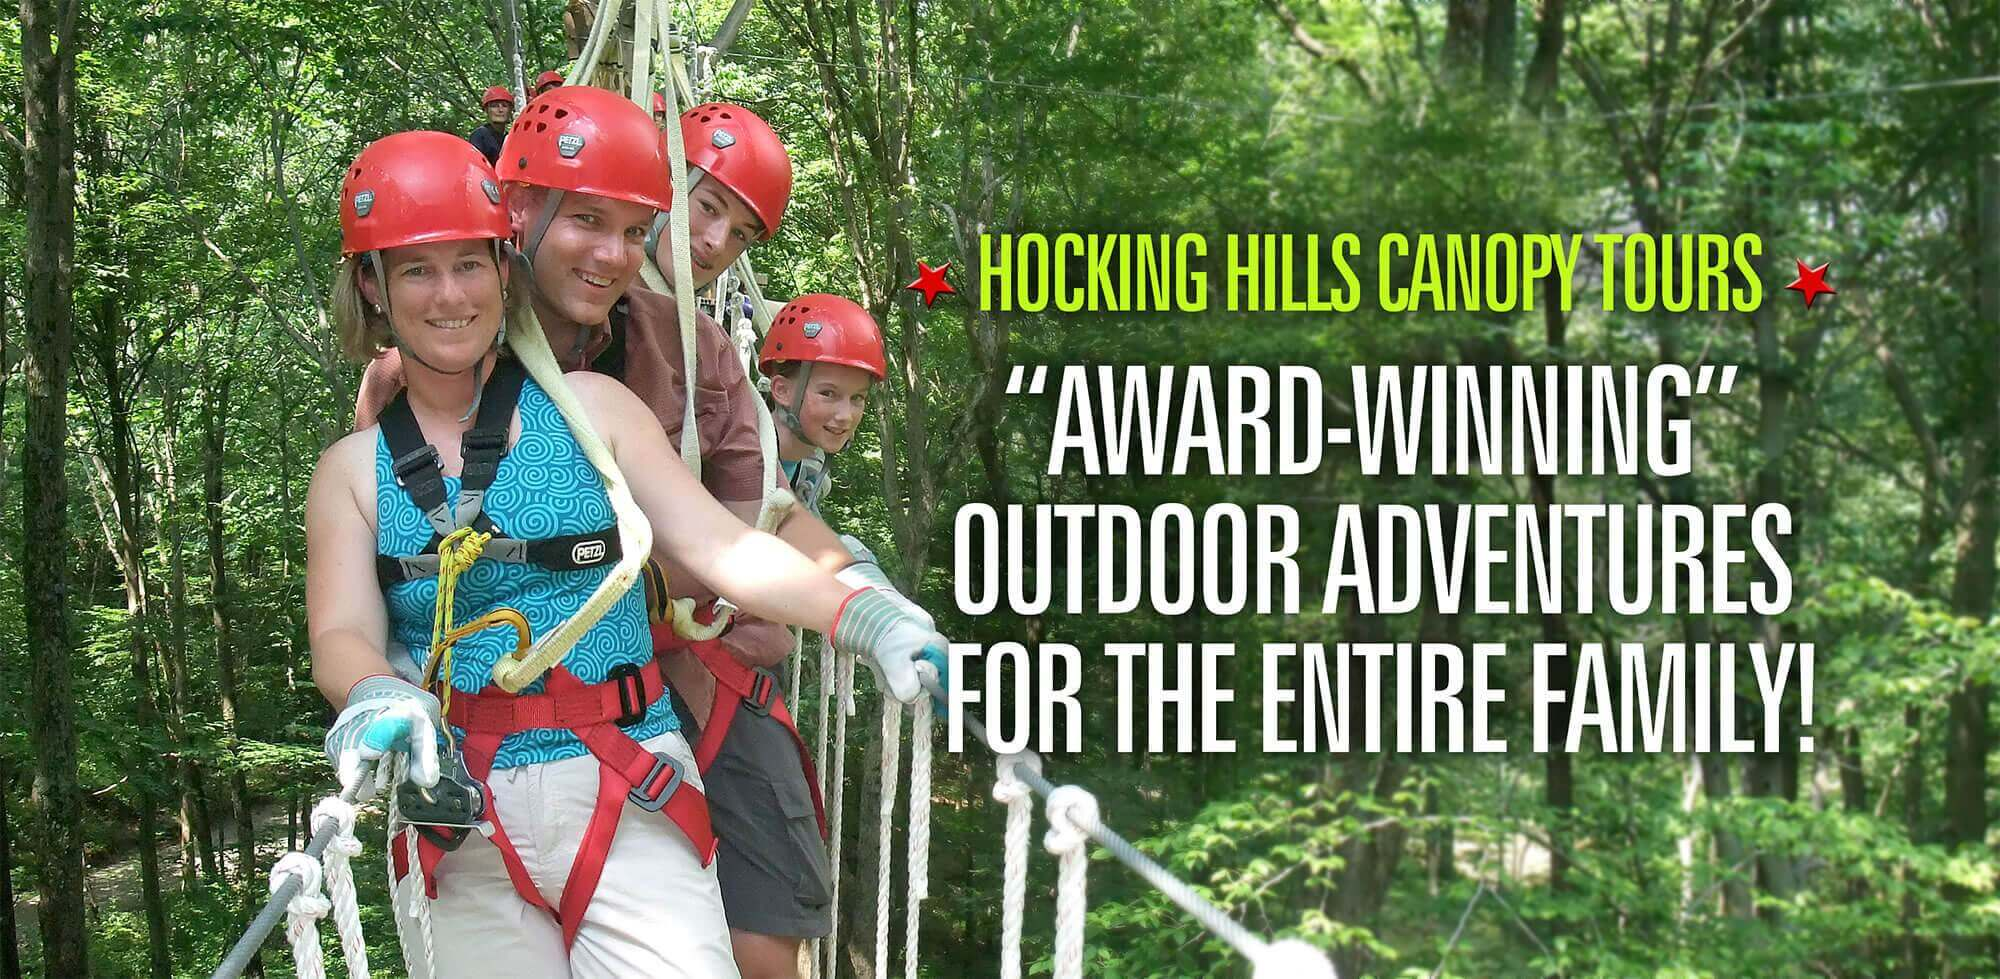 Donation Requests - Hocking Hills Canopy Tours